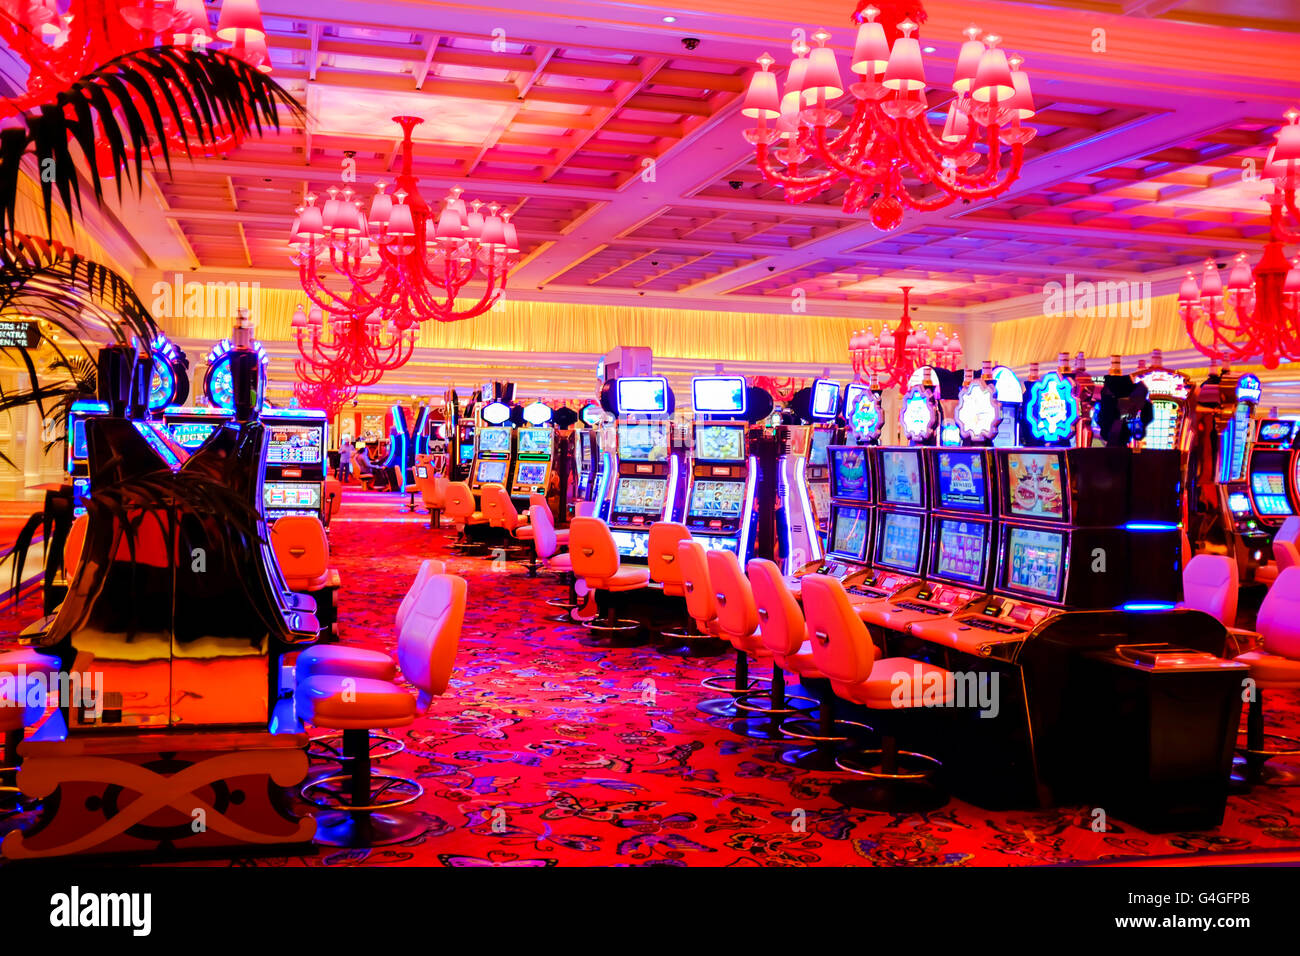 The interior of Encore Hotel and casino in Las Vegas - Stock Image